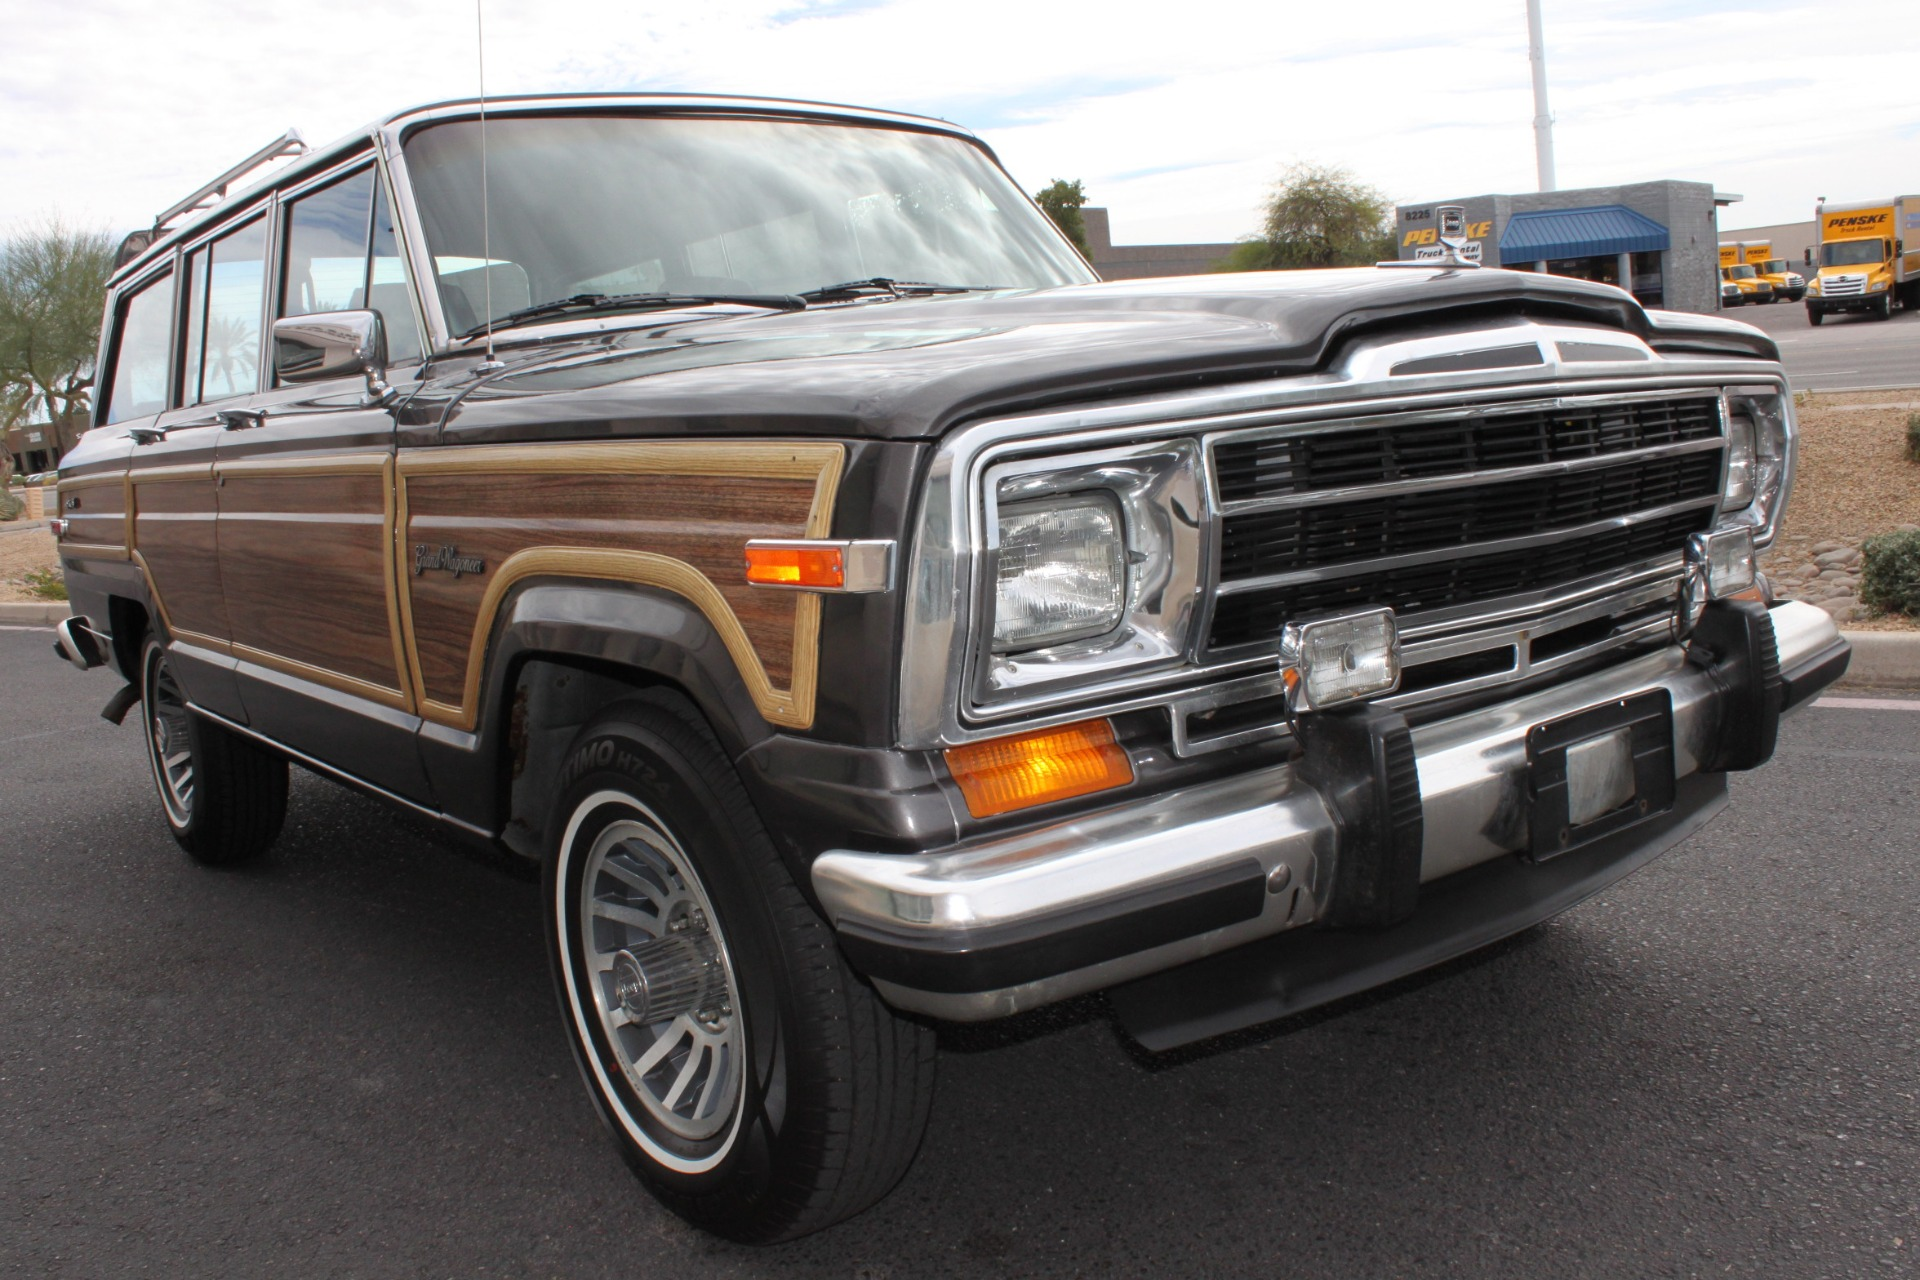 Used-1989-Jeep-Grand-Wagoneer-4X4-Mercedes-Benz